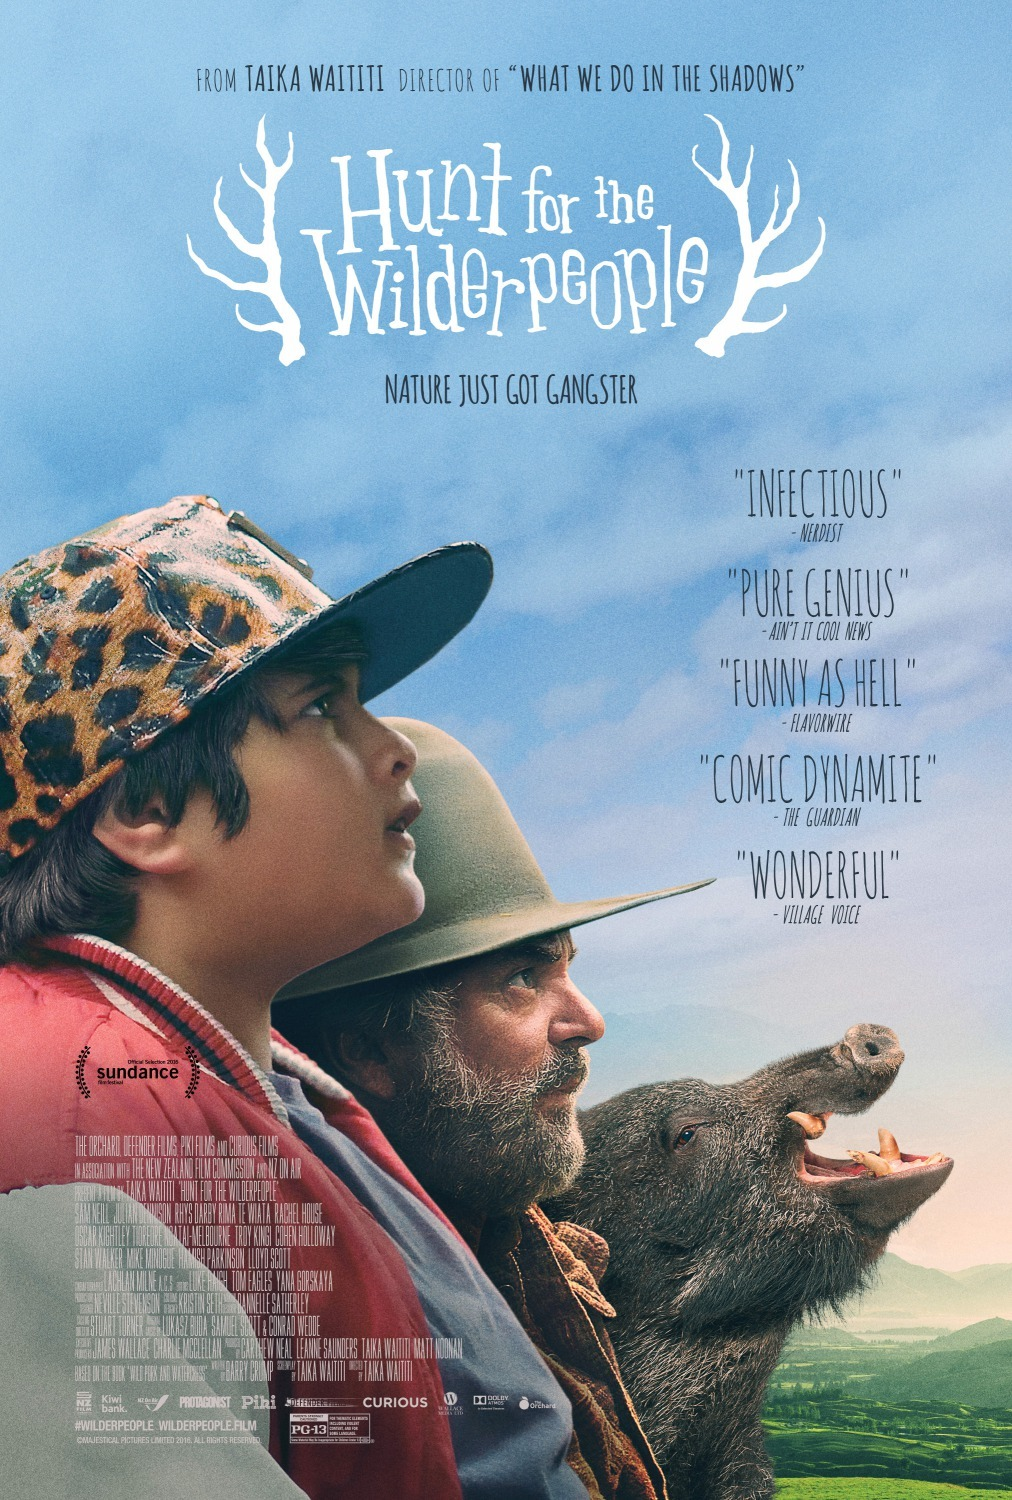 Huntforthewilderpeople.jpg